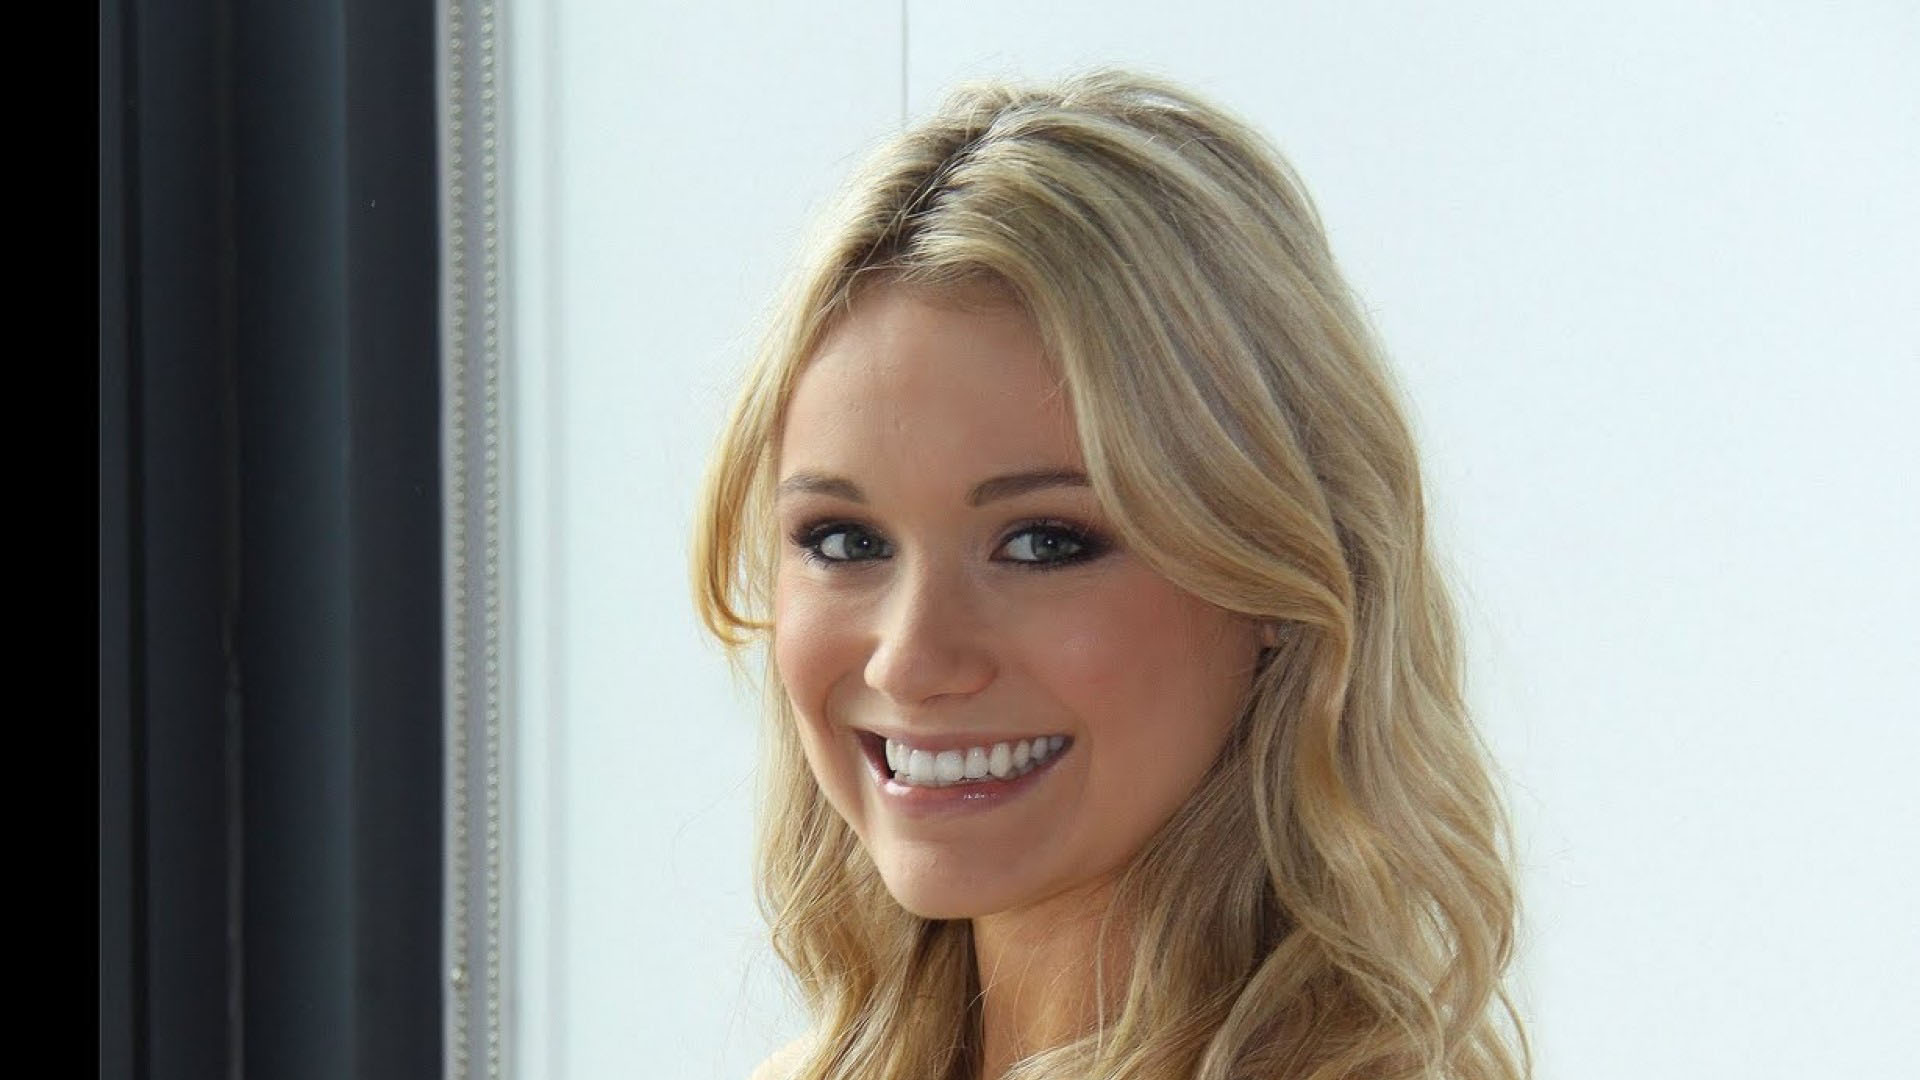 Katrina Bowden Full hd wallpapers